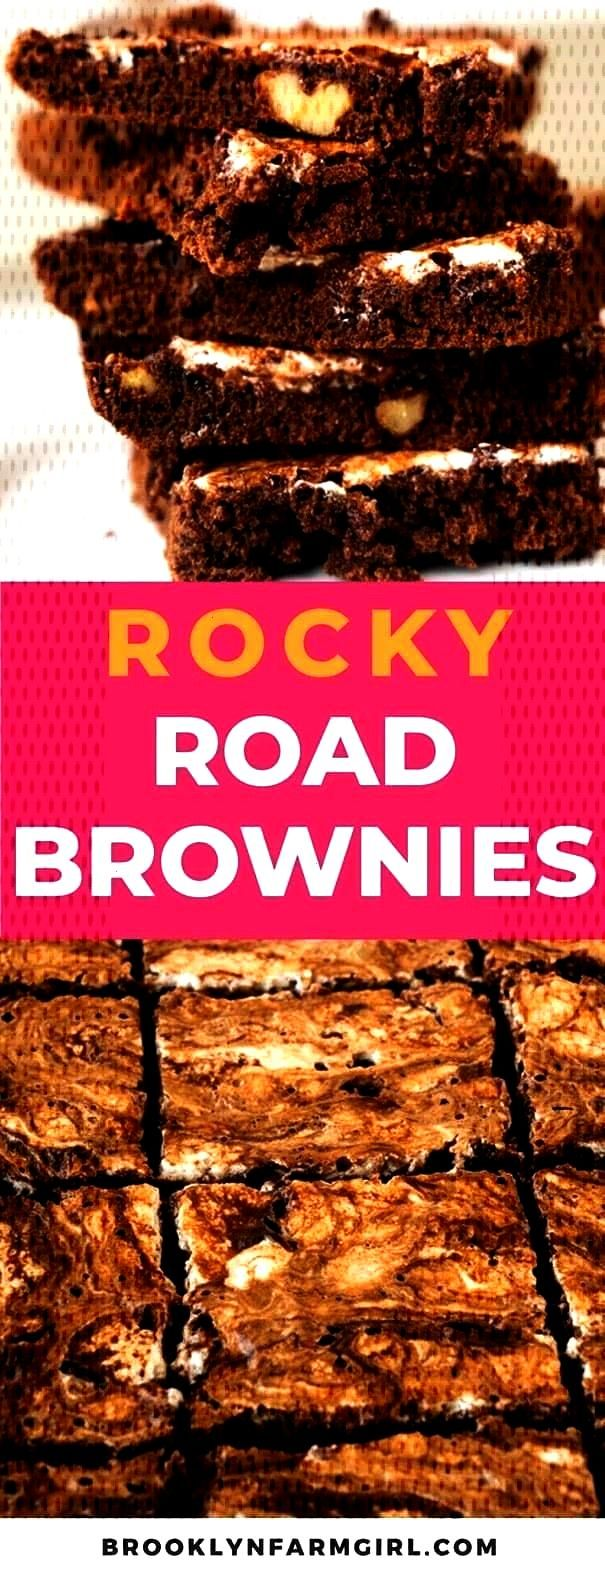 Brownies - Brooklyn Farm Girl These Rocky Road Brownies are rich and fudgy bars loaded with walnuts